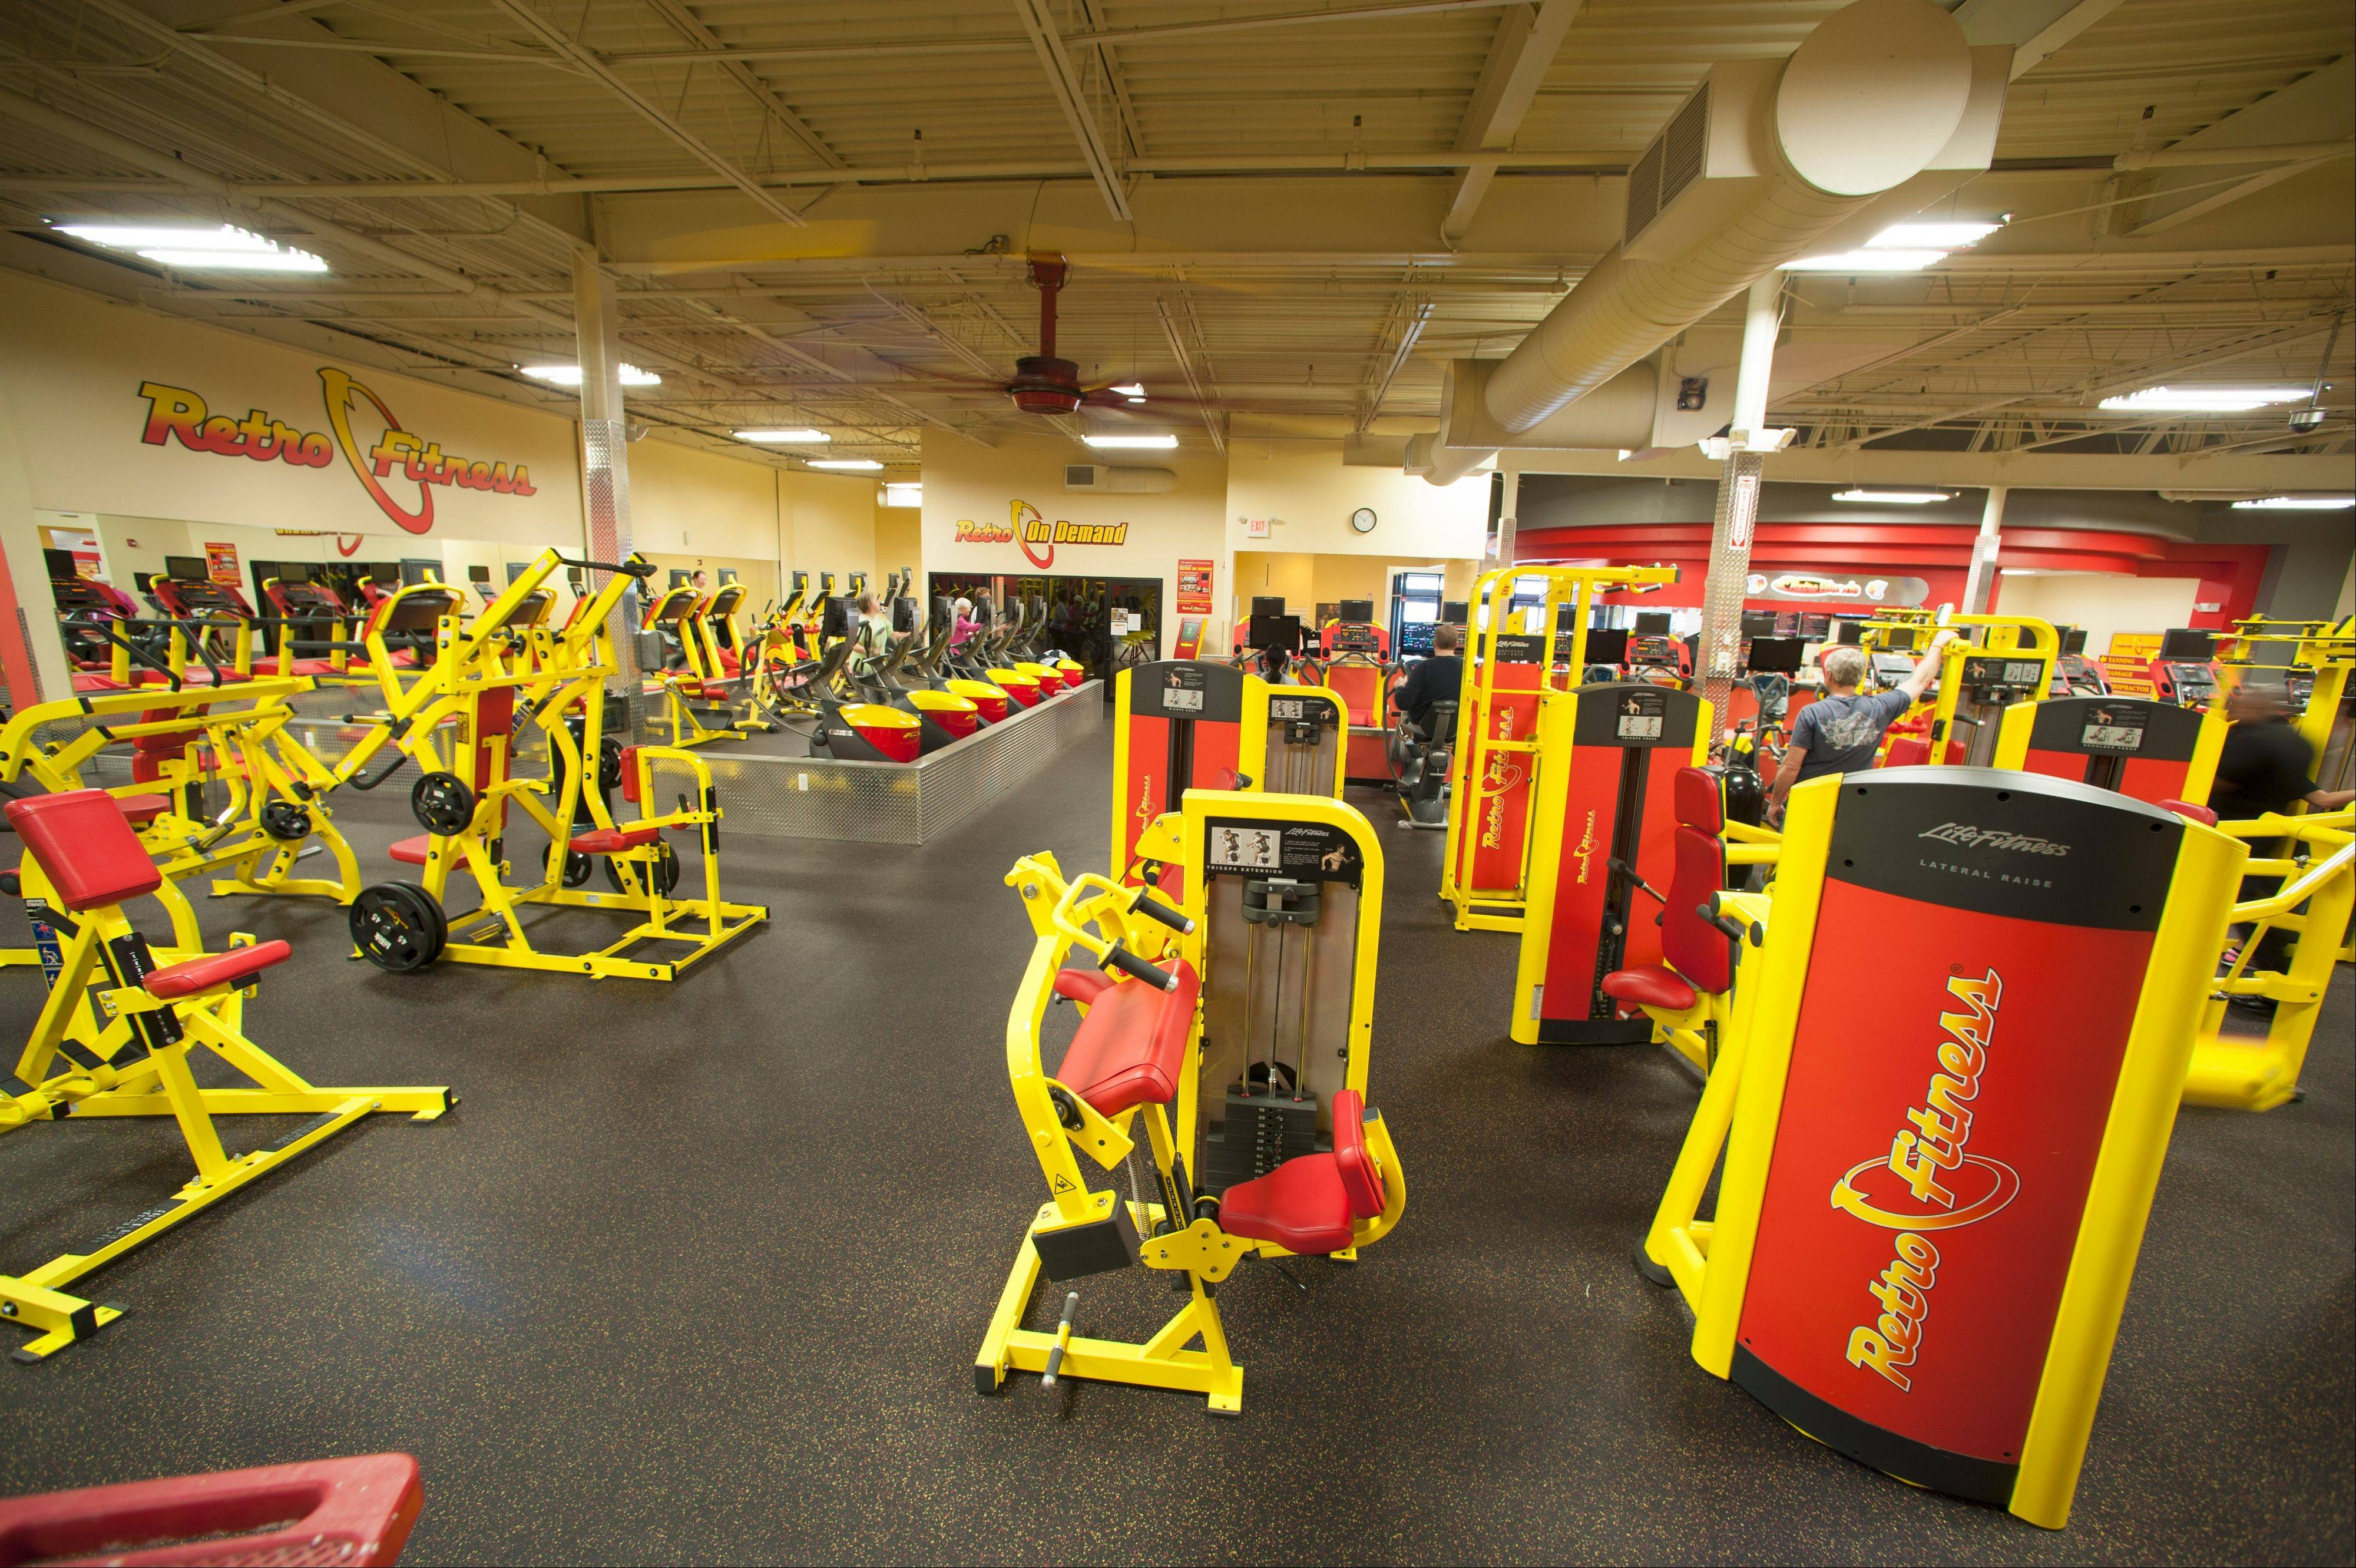 Eric Casaburi, the chief executive of Retro Fitness, says he's been targeting the Chicago market for some time and opening a facility in Carol Stream is the first step in establishing the company's name here.